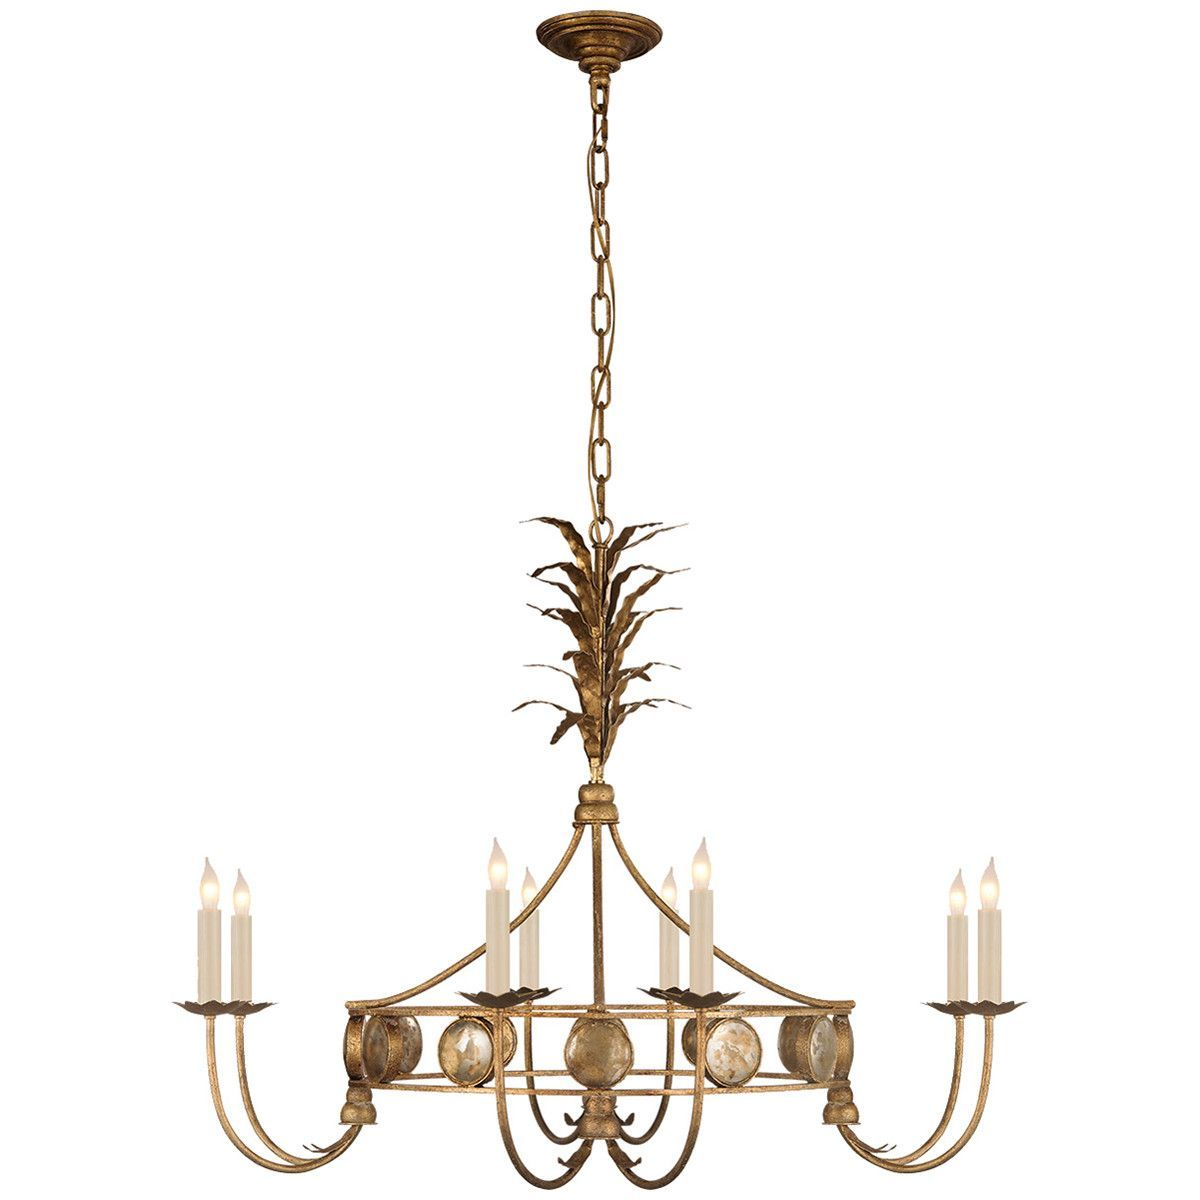 Visual Comfort Lighting E F Chapman Gramercy Chandelier Ceiling Light Chandelier Ceiling Lights Ceiling Lights Iron Chandeliers